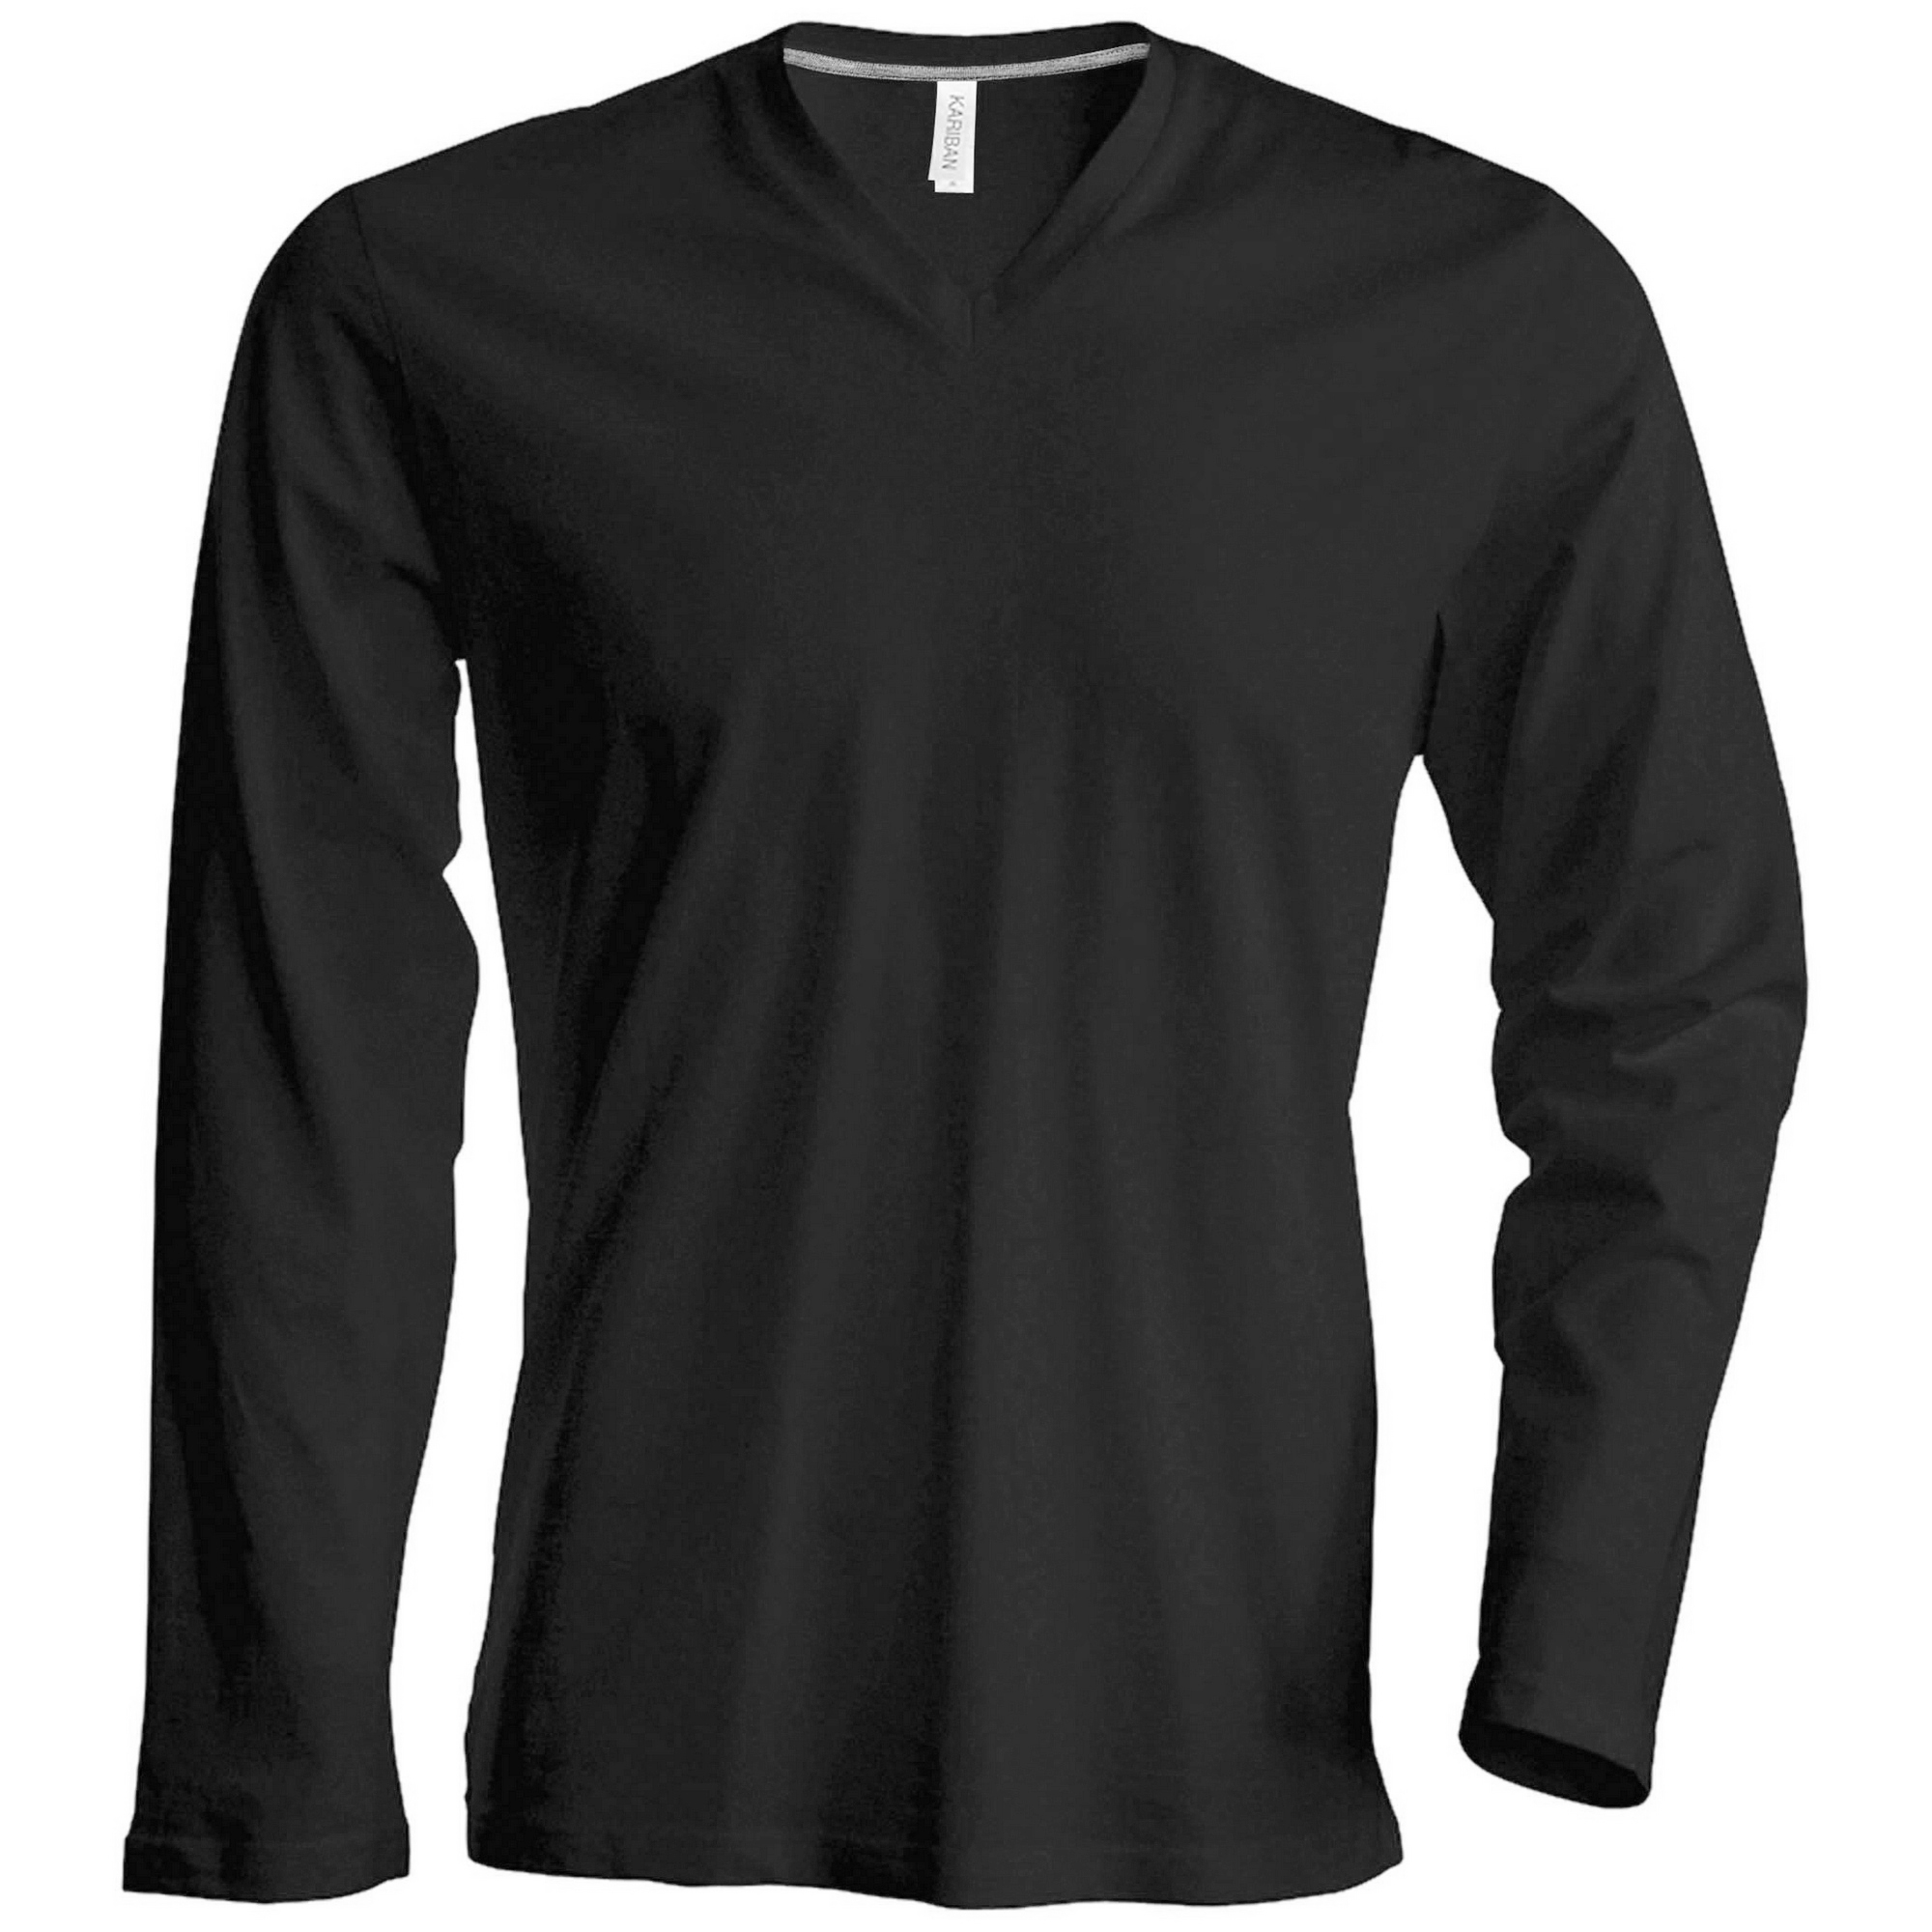 kariban mens slim fit long sleeve v neck t shirt. Black Bedroom Furniture Sets. Home Design Ideas